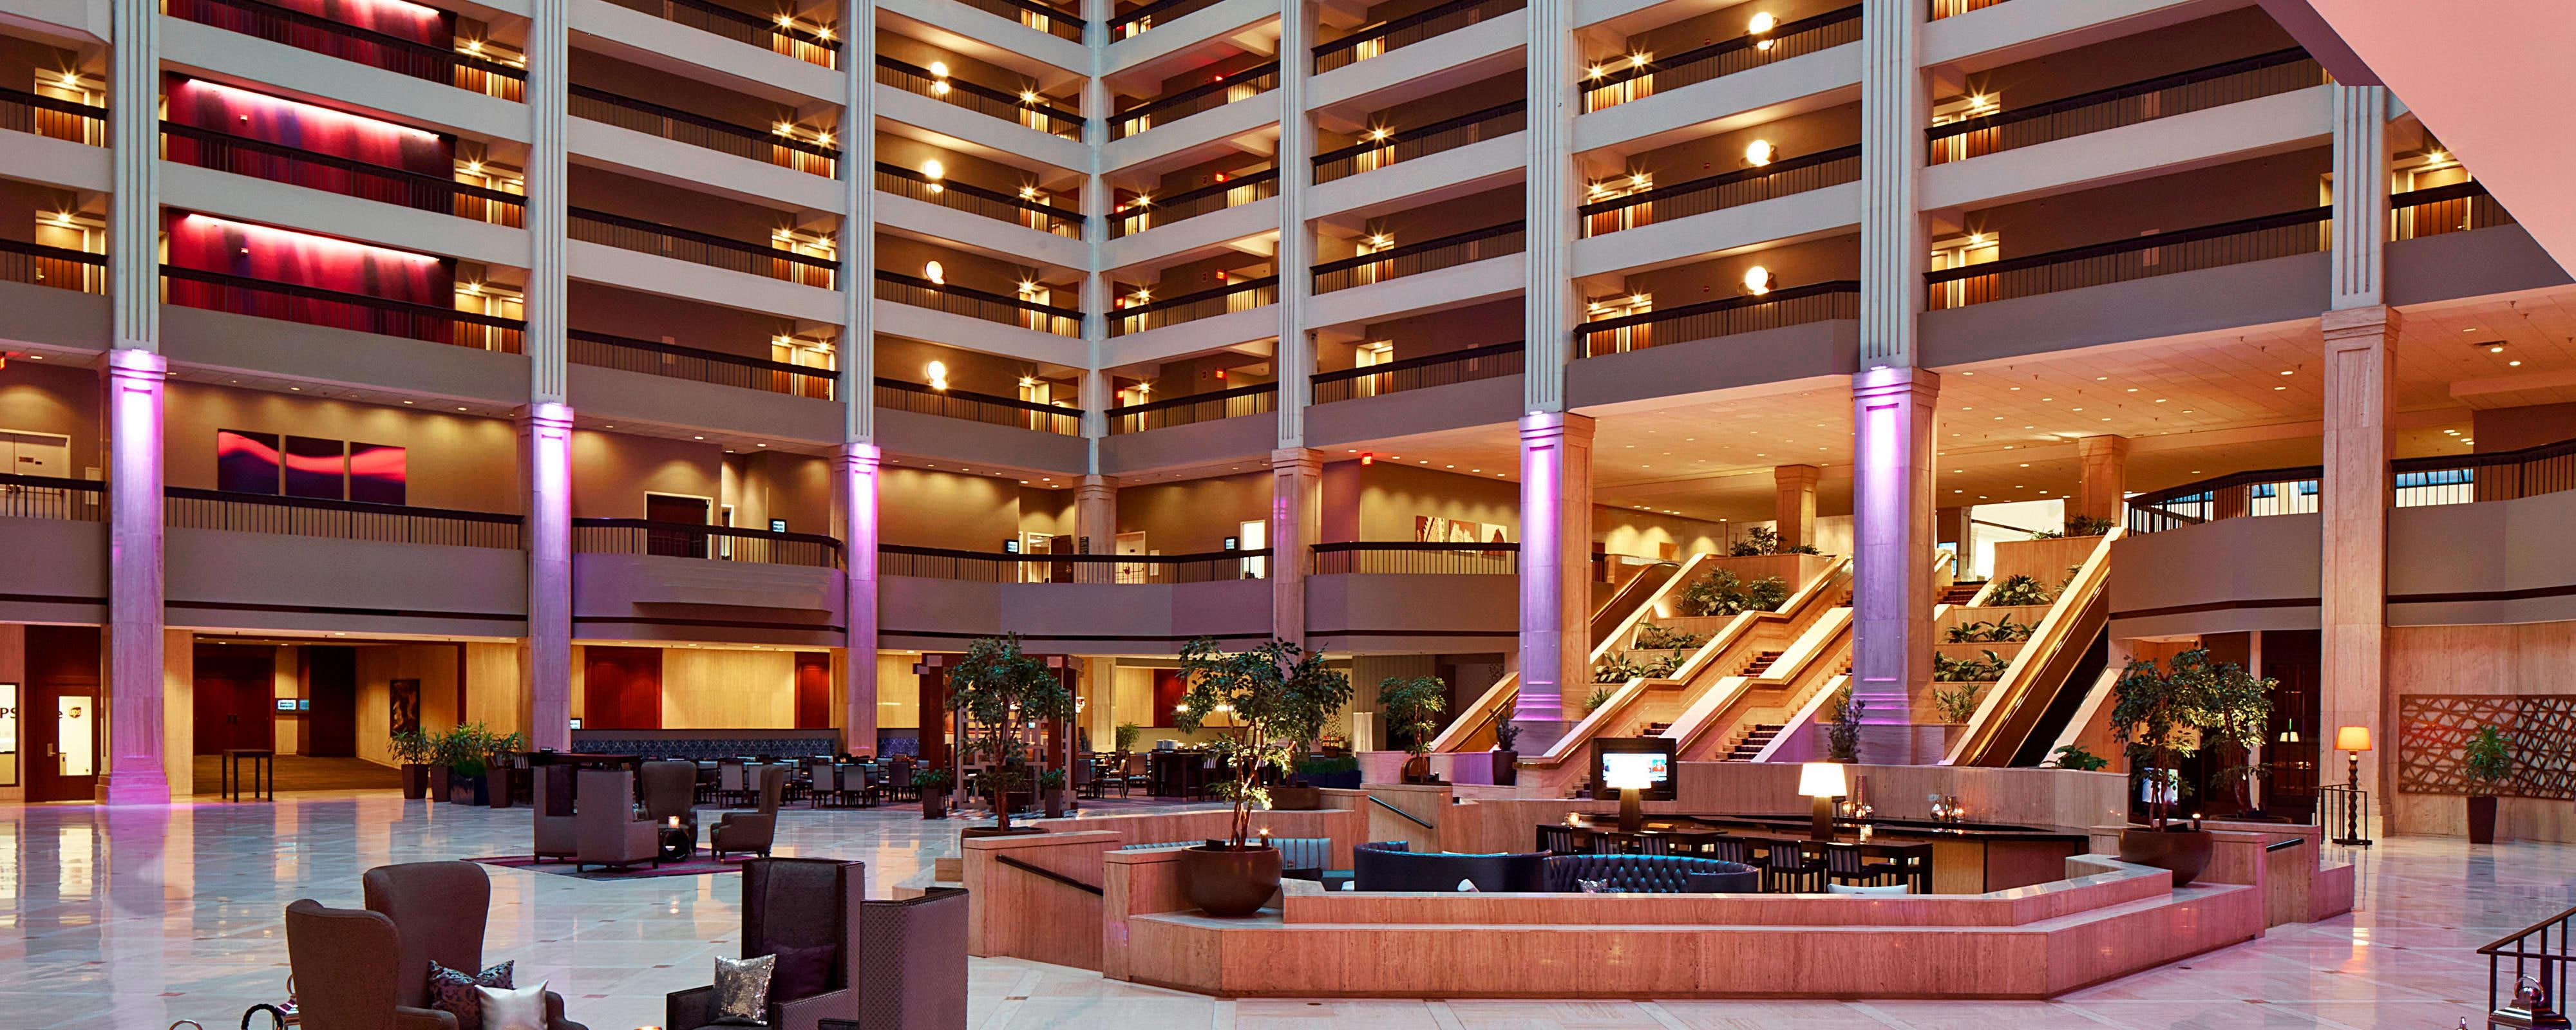 Pictures of hotels in or near Atlanta | Take a photo tour with ...